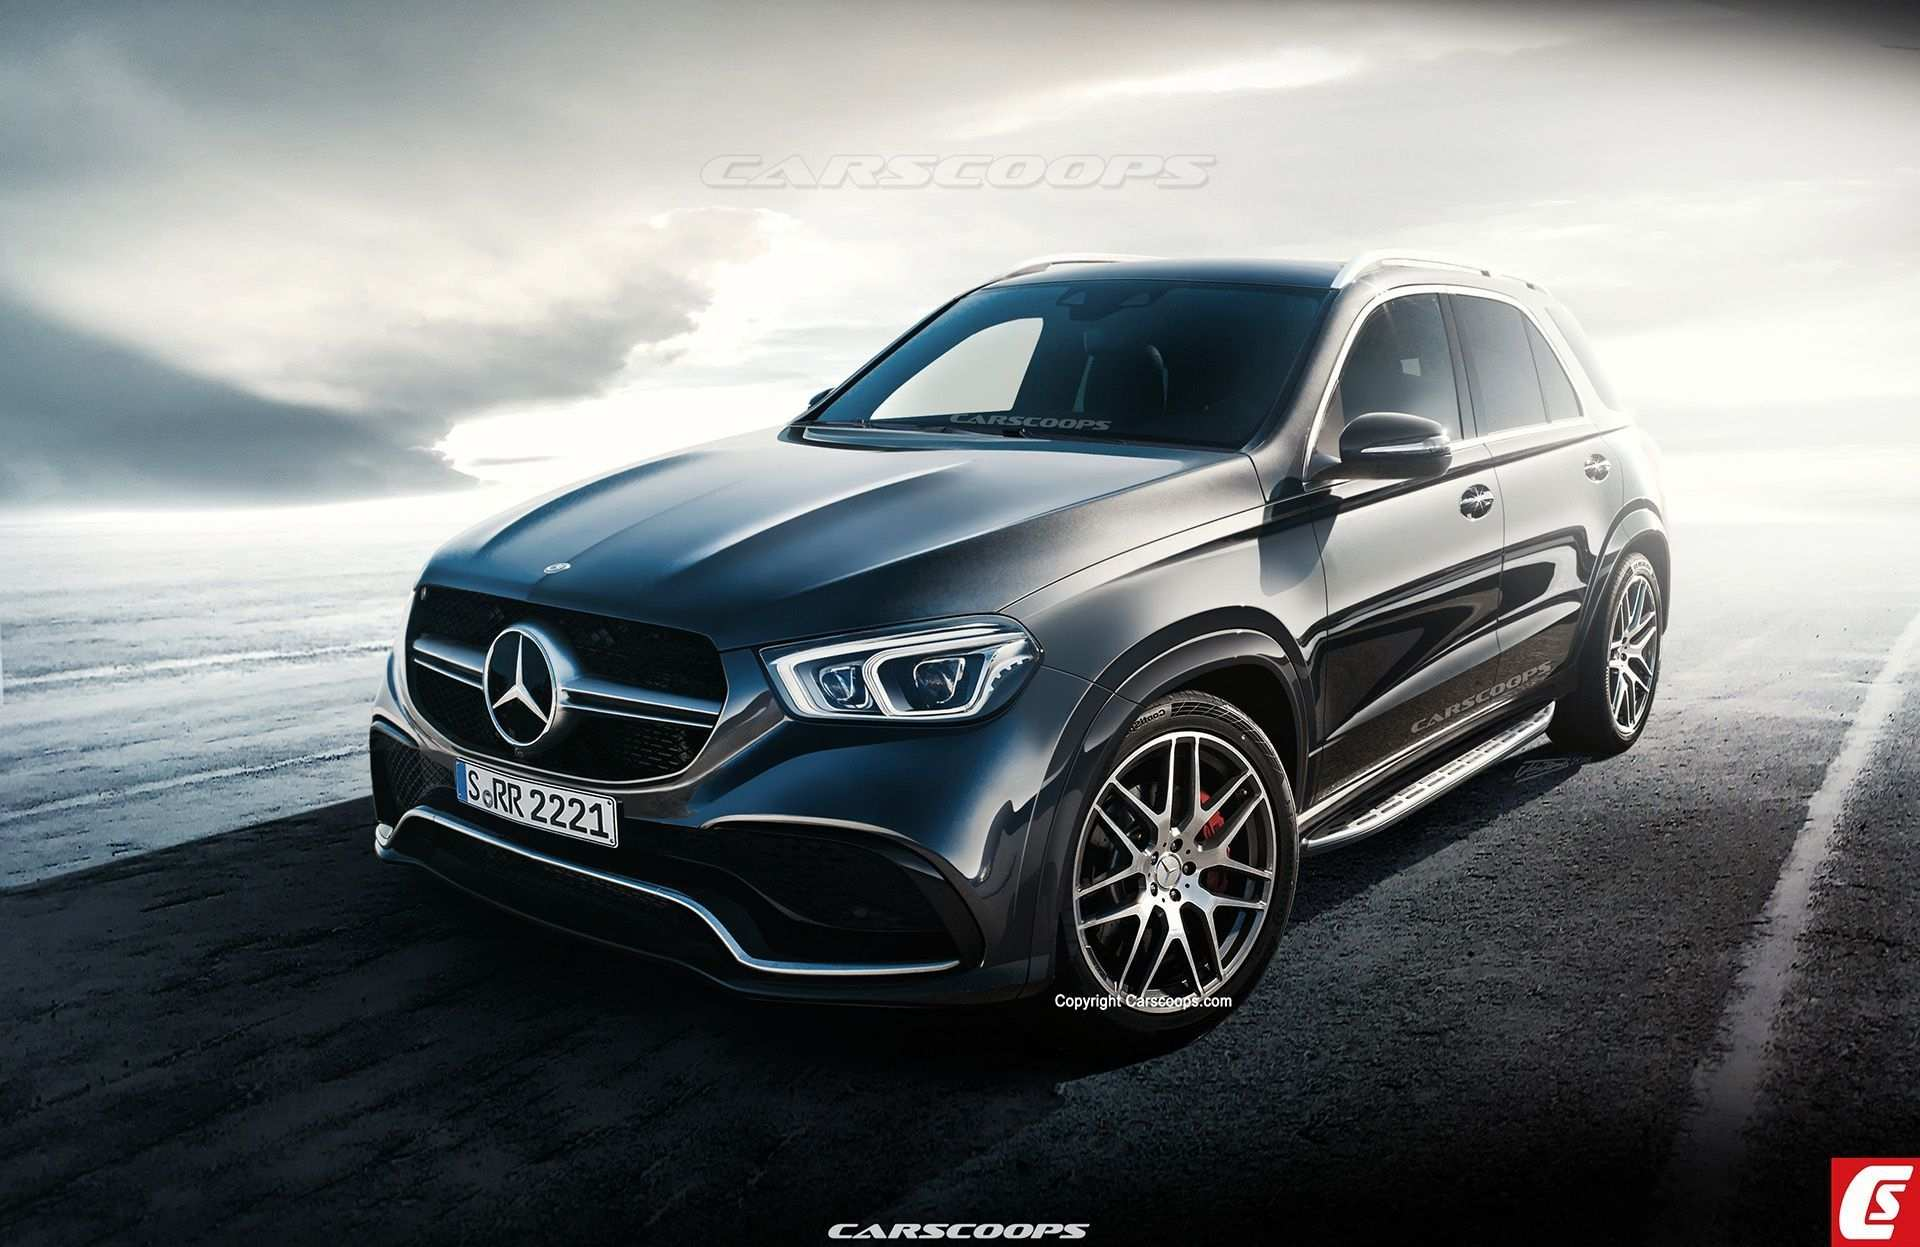 58 Best Review Best Mercedes Drivers 2019 Exterior Model with Best Mercedes Drivers 2019 Exterior